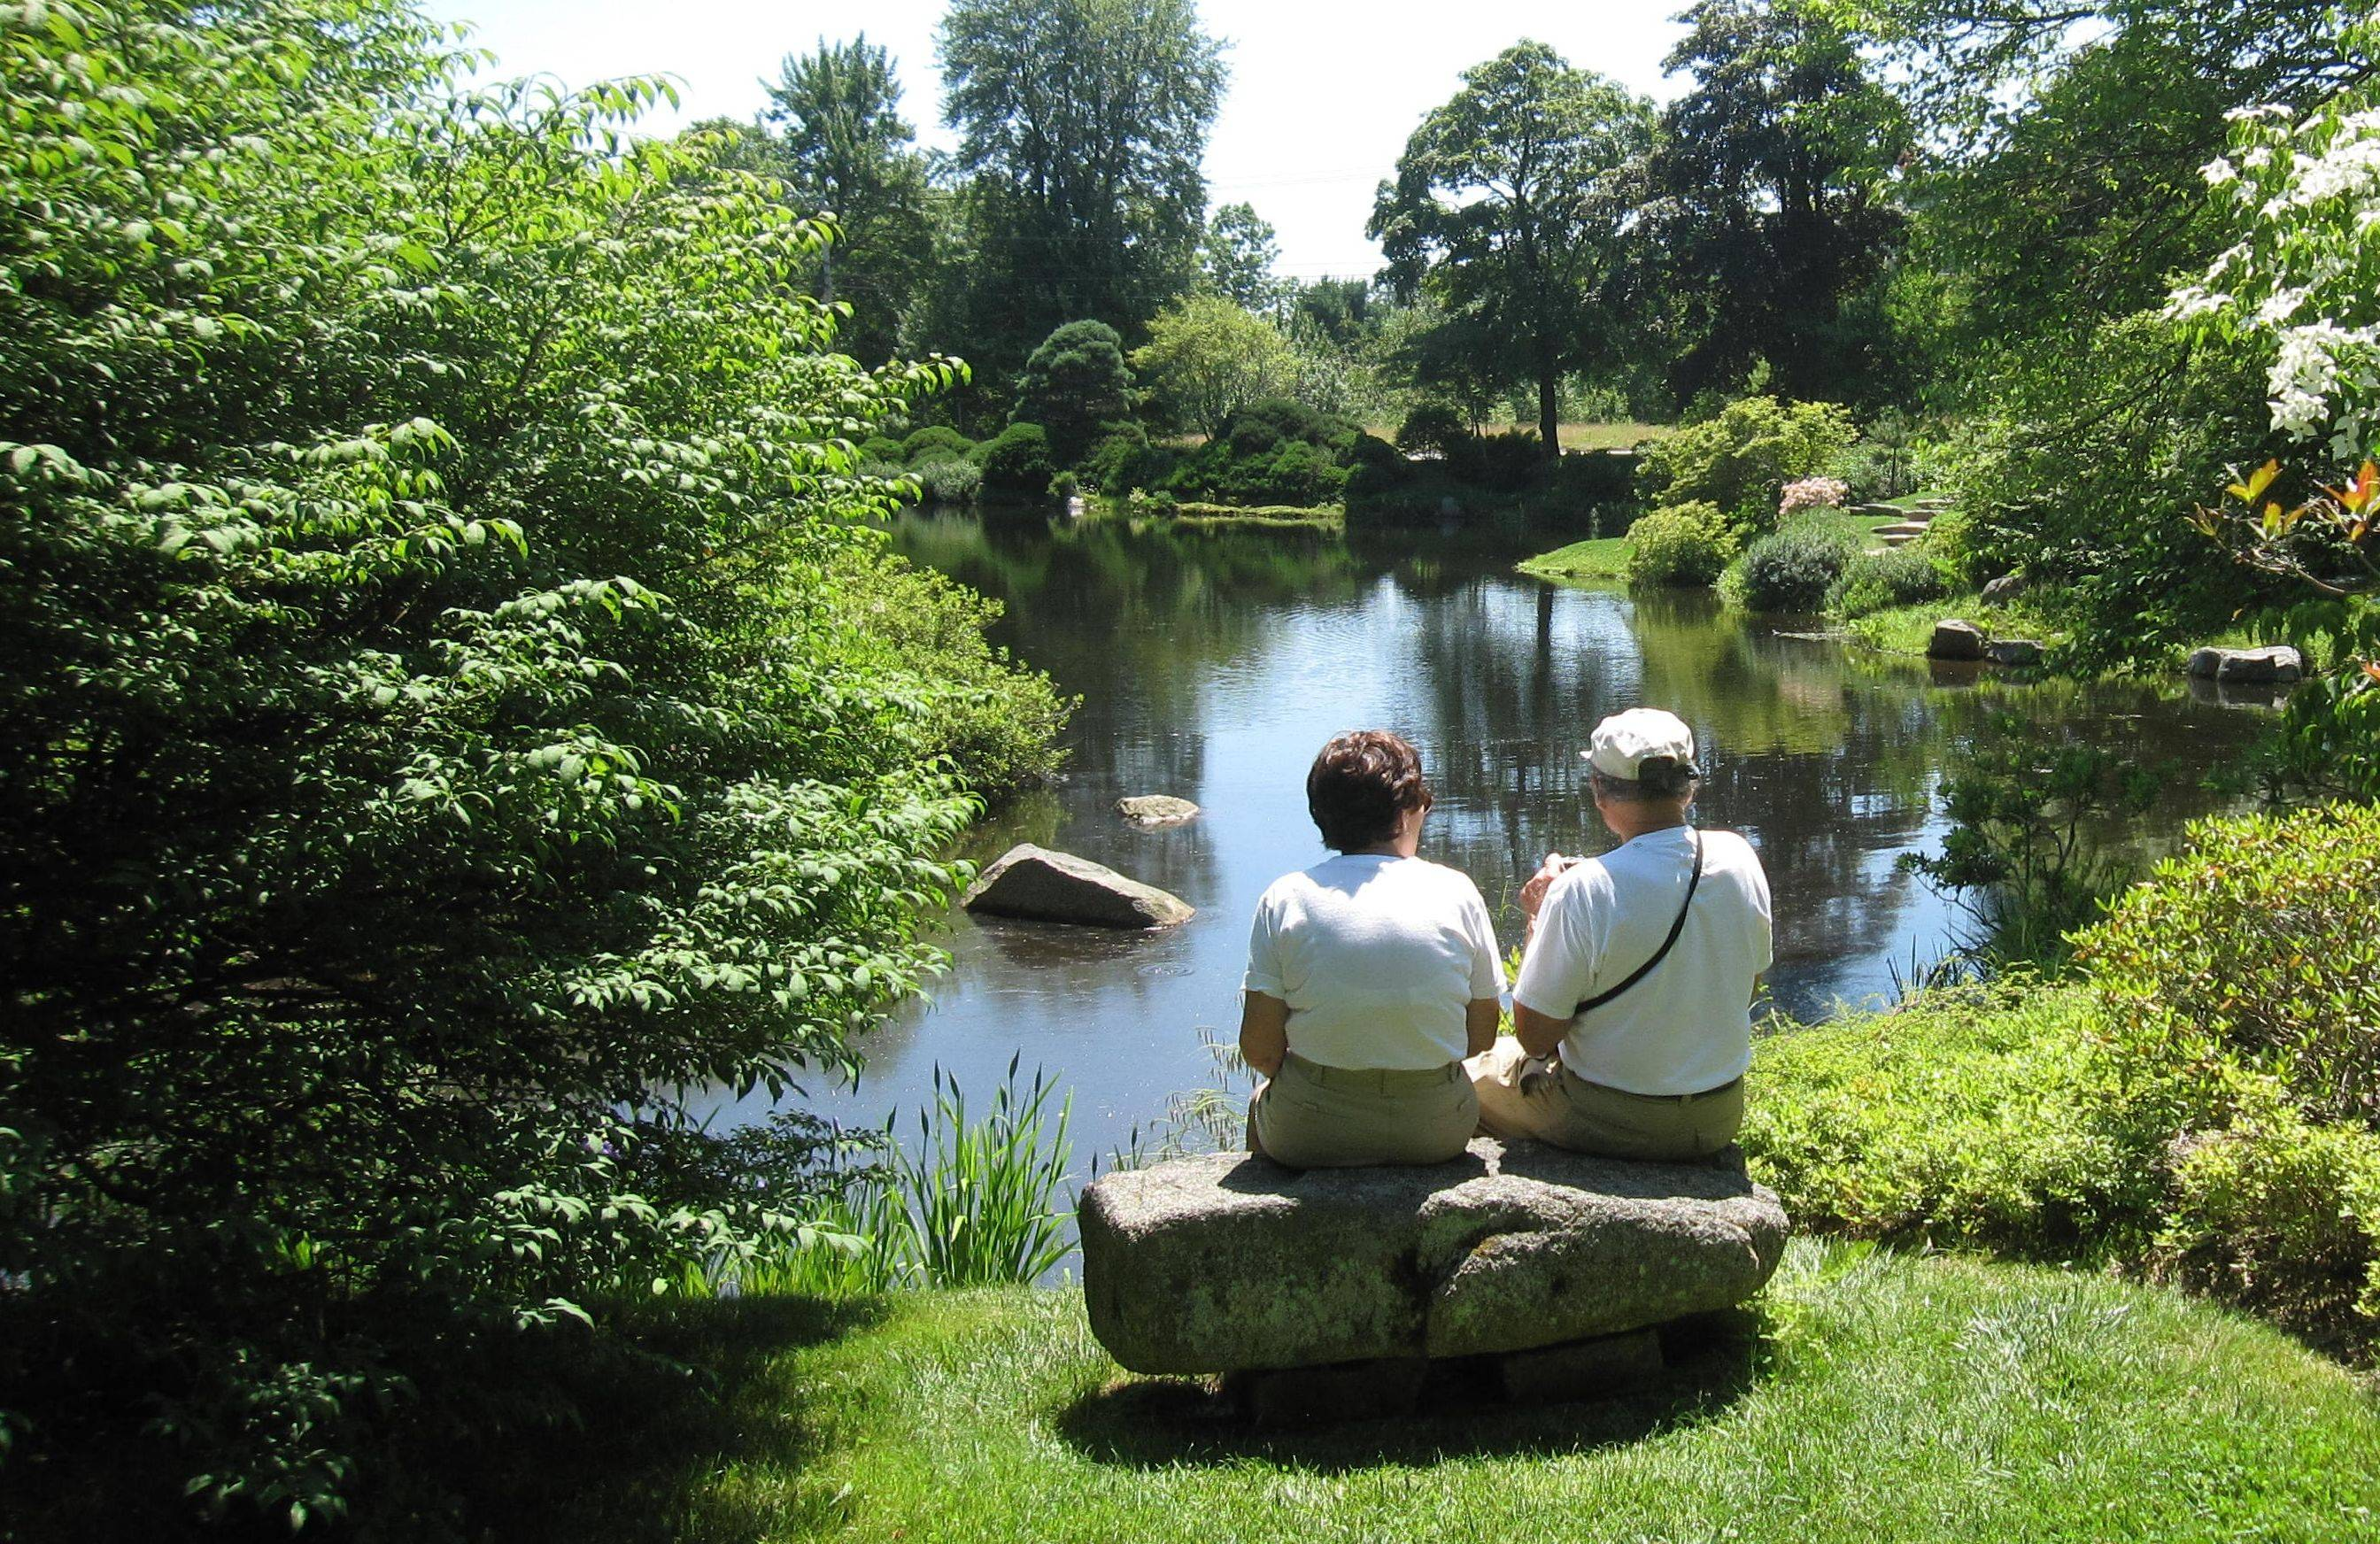 Visitors sit on a rock bench to view the scenery at the Asticou Azalea Garden pond in Northeast Harbor, Maine. The garden includes plants from noted landscape designer Beatrix Farrand, who has designed gardens for the White House and prominent clients such as John D. Roosevelt and his wife, Abby.